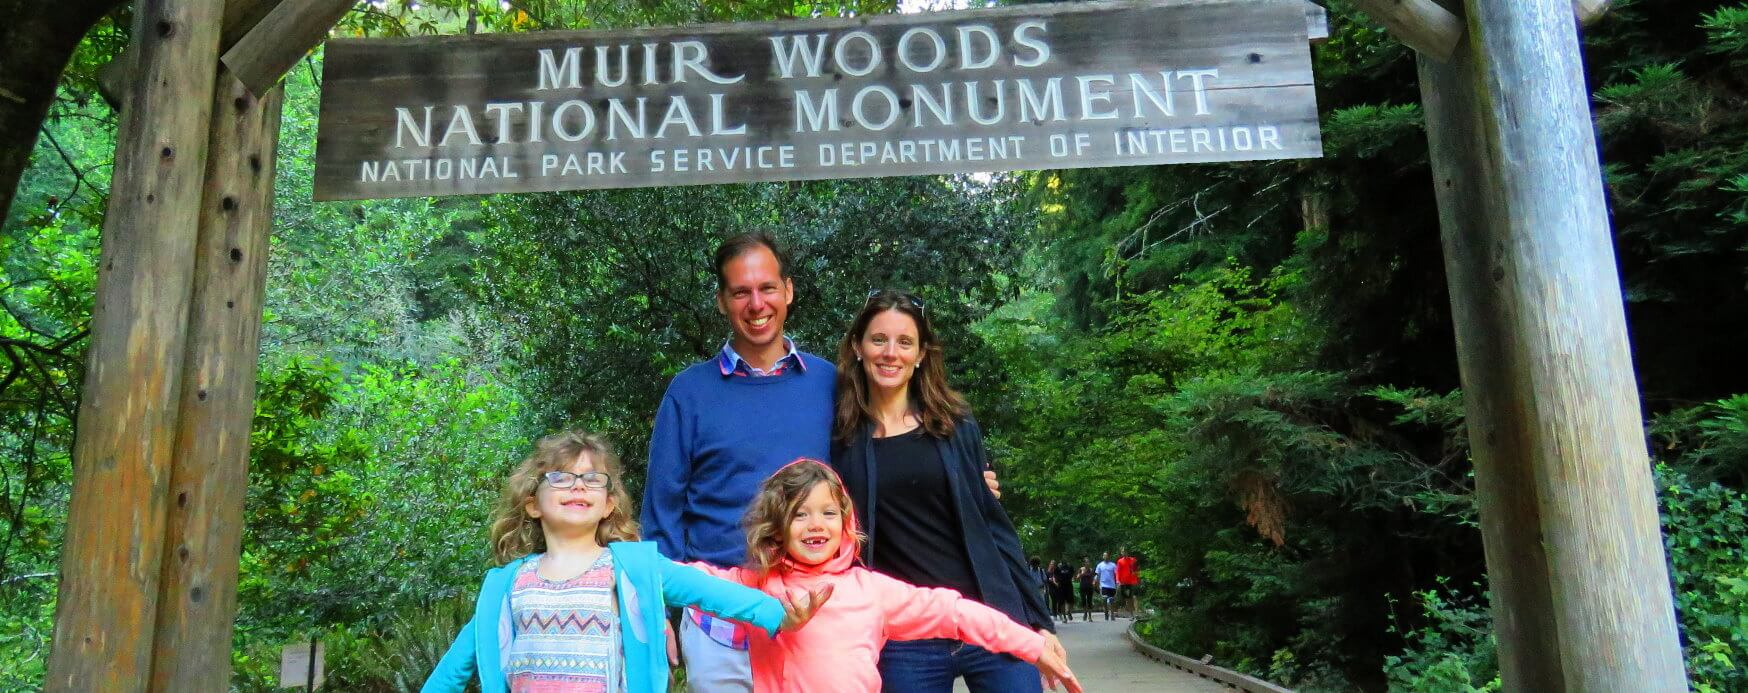 family-fun-things-to-do-muirwoods